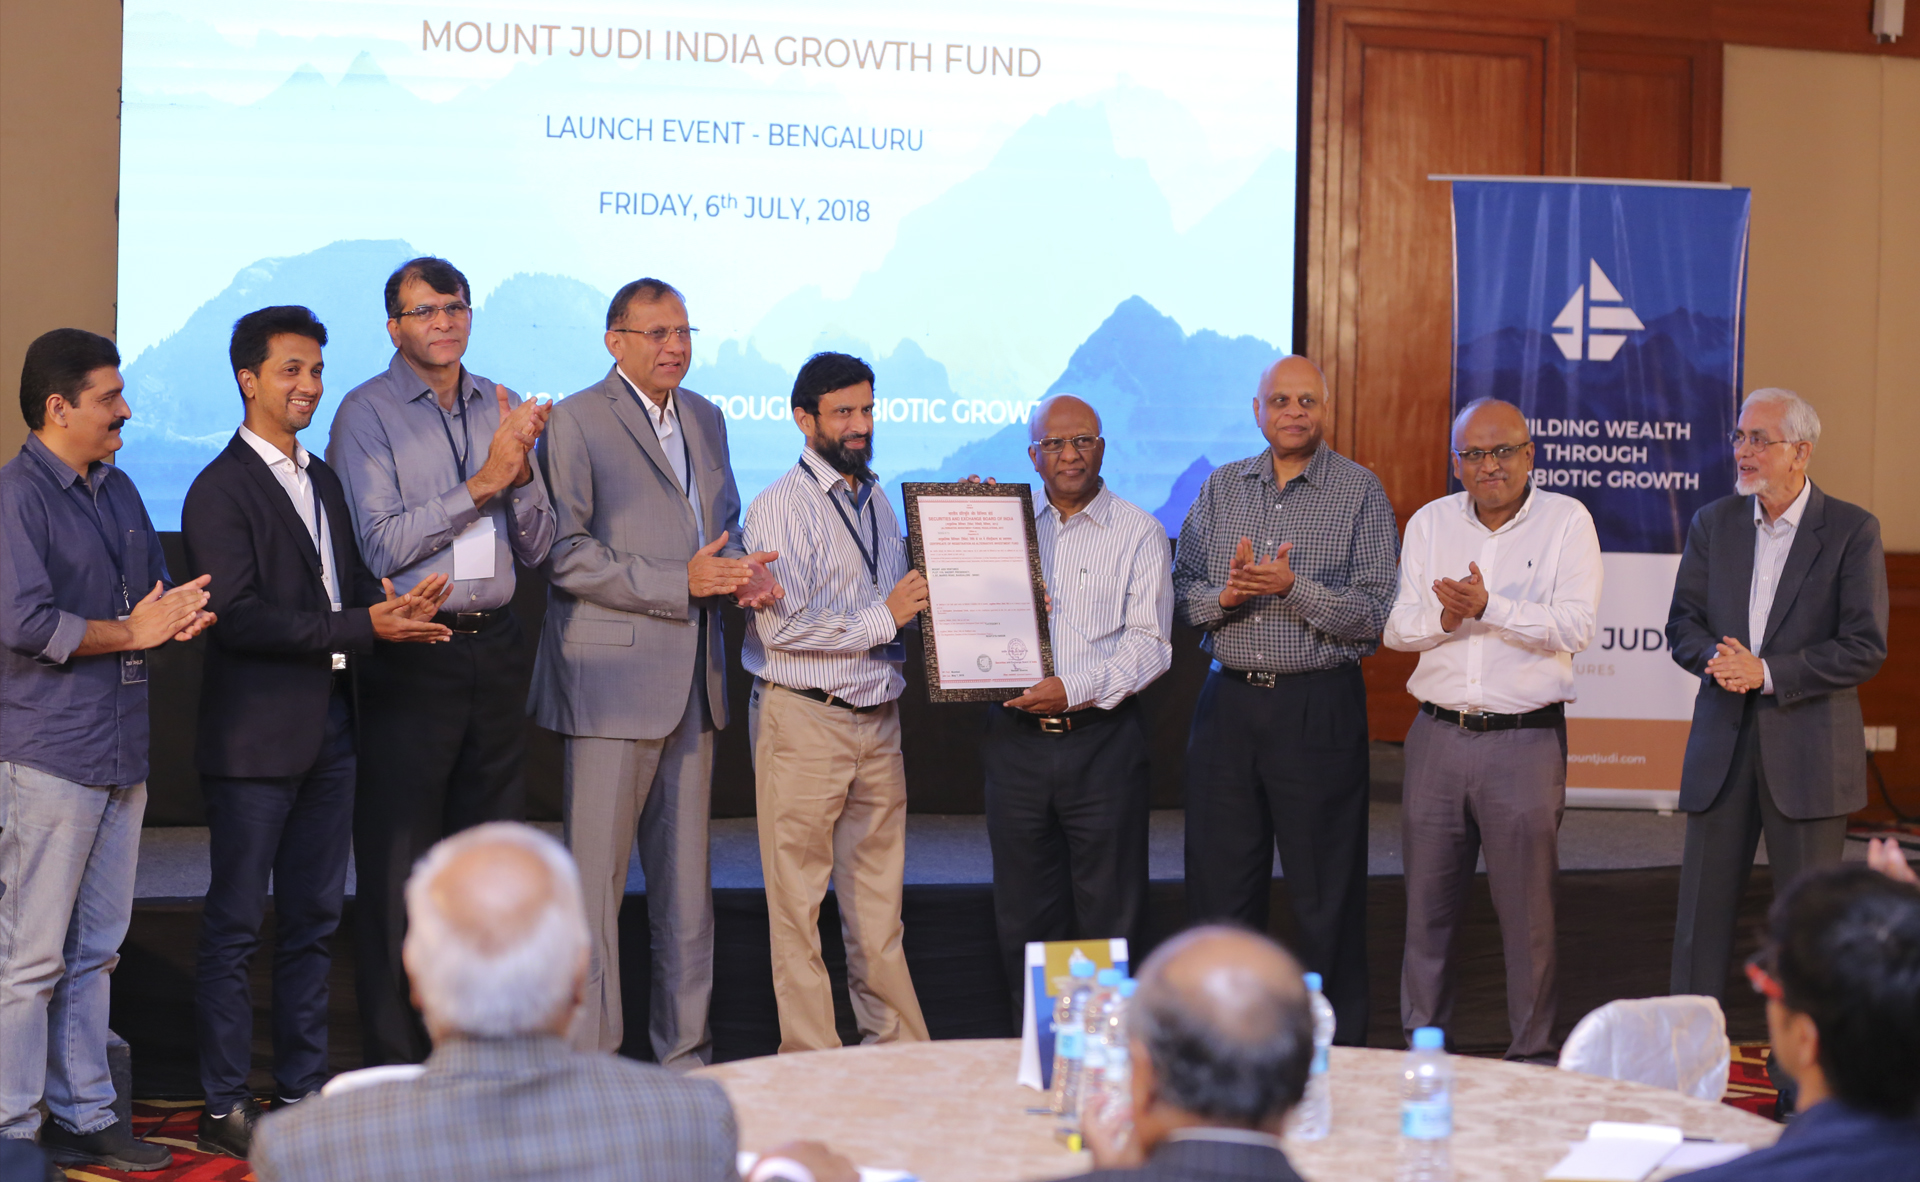 Dr. Sridhar Mitta, Mr. V. Namasivayam and Mr. Mustafa Wajid inaugurating Mount Judi India Growth Fund by handing over SEBI license to General Partners of Mount Judi Ventures